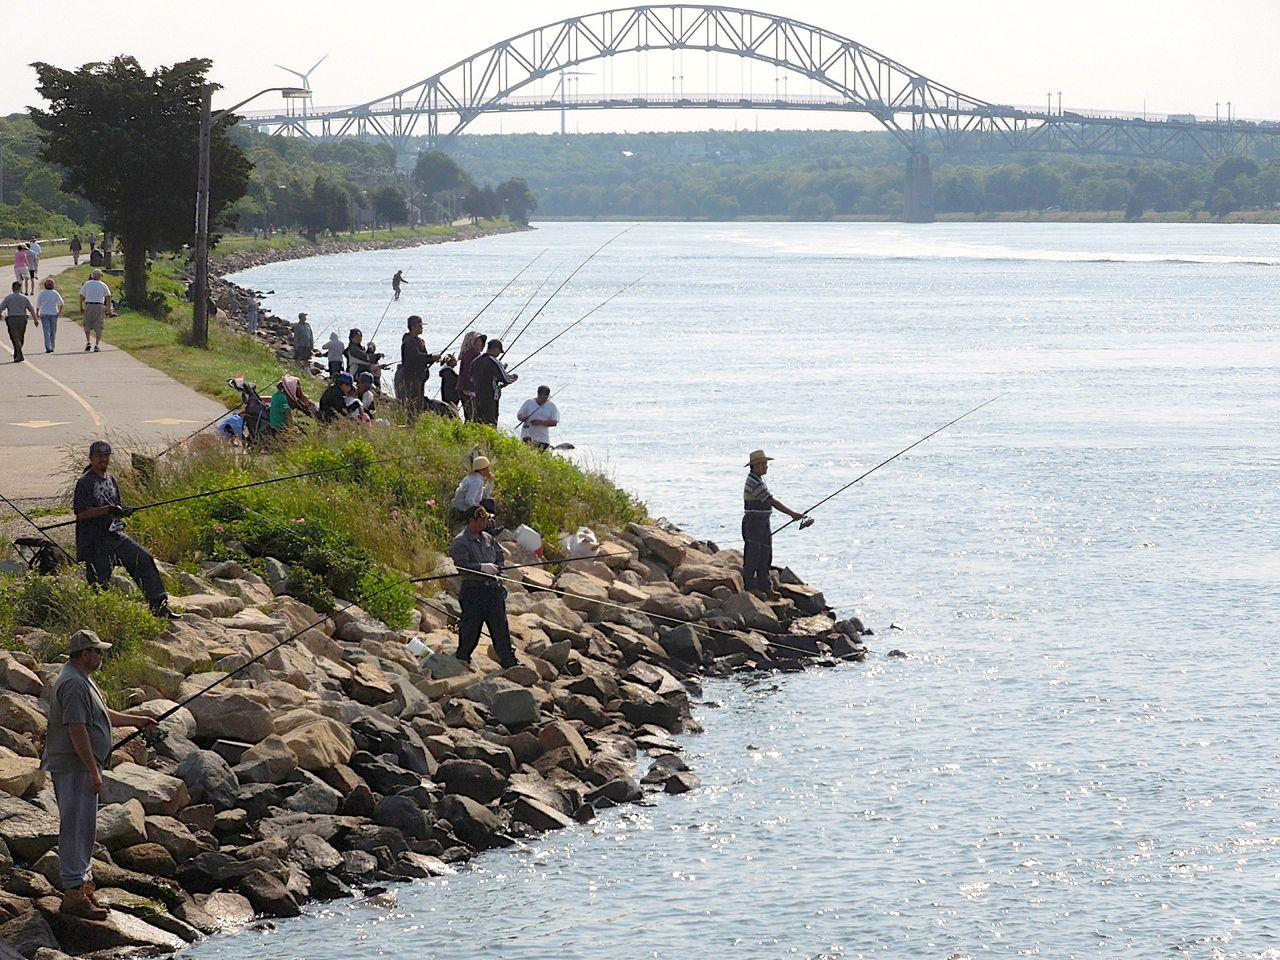 Full moon tides bring big striped bass action to cape cod canal wcai full moon tides bring big striped bass action to cape cod canal nvjuhfo Images